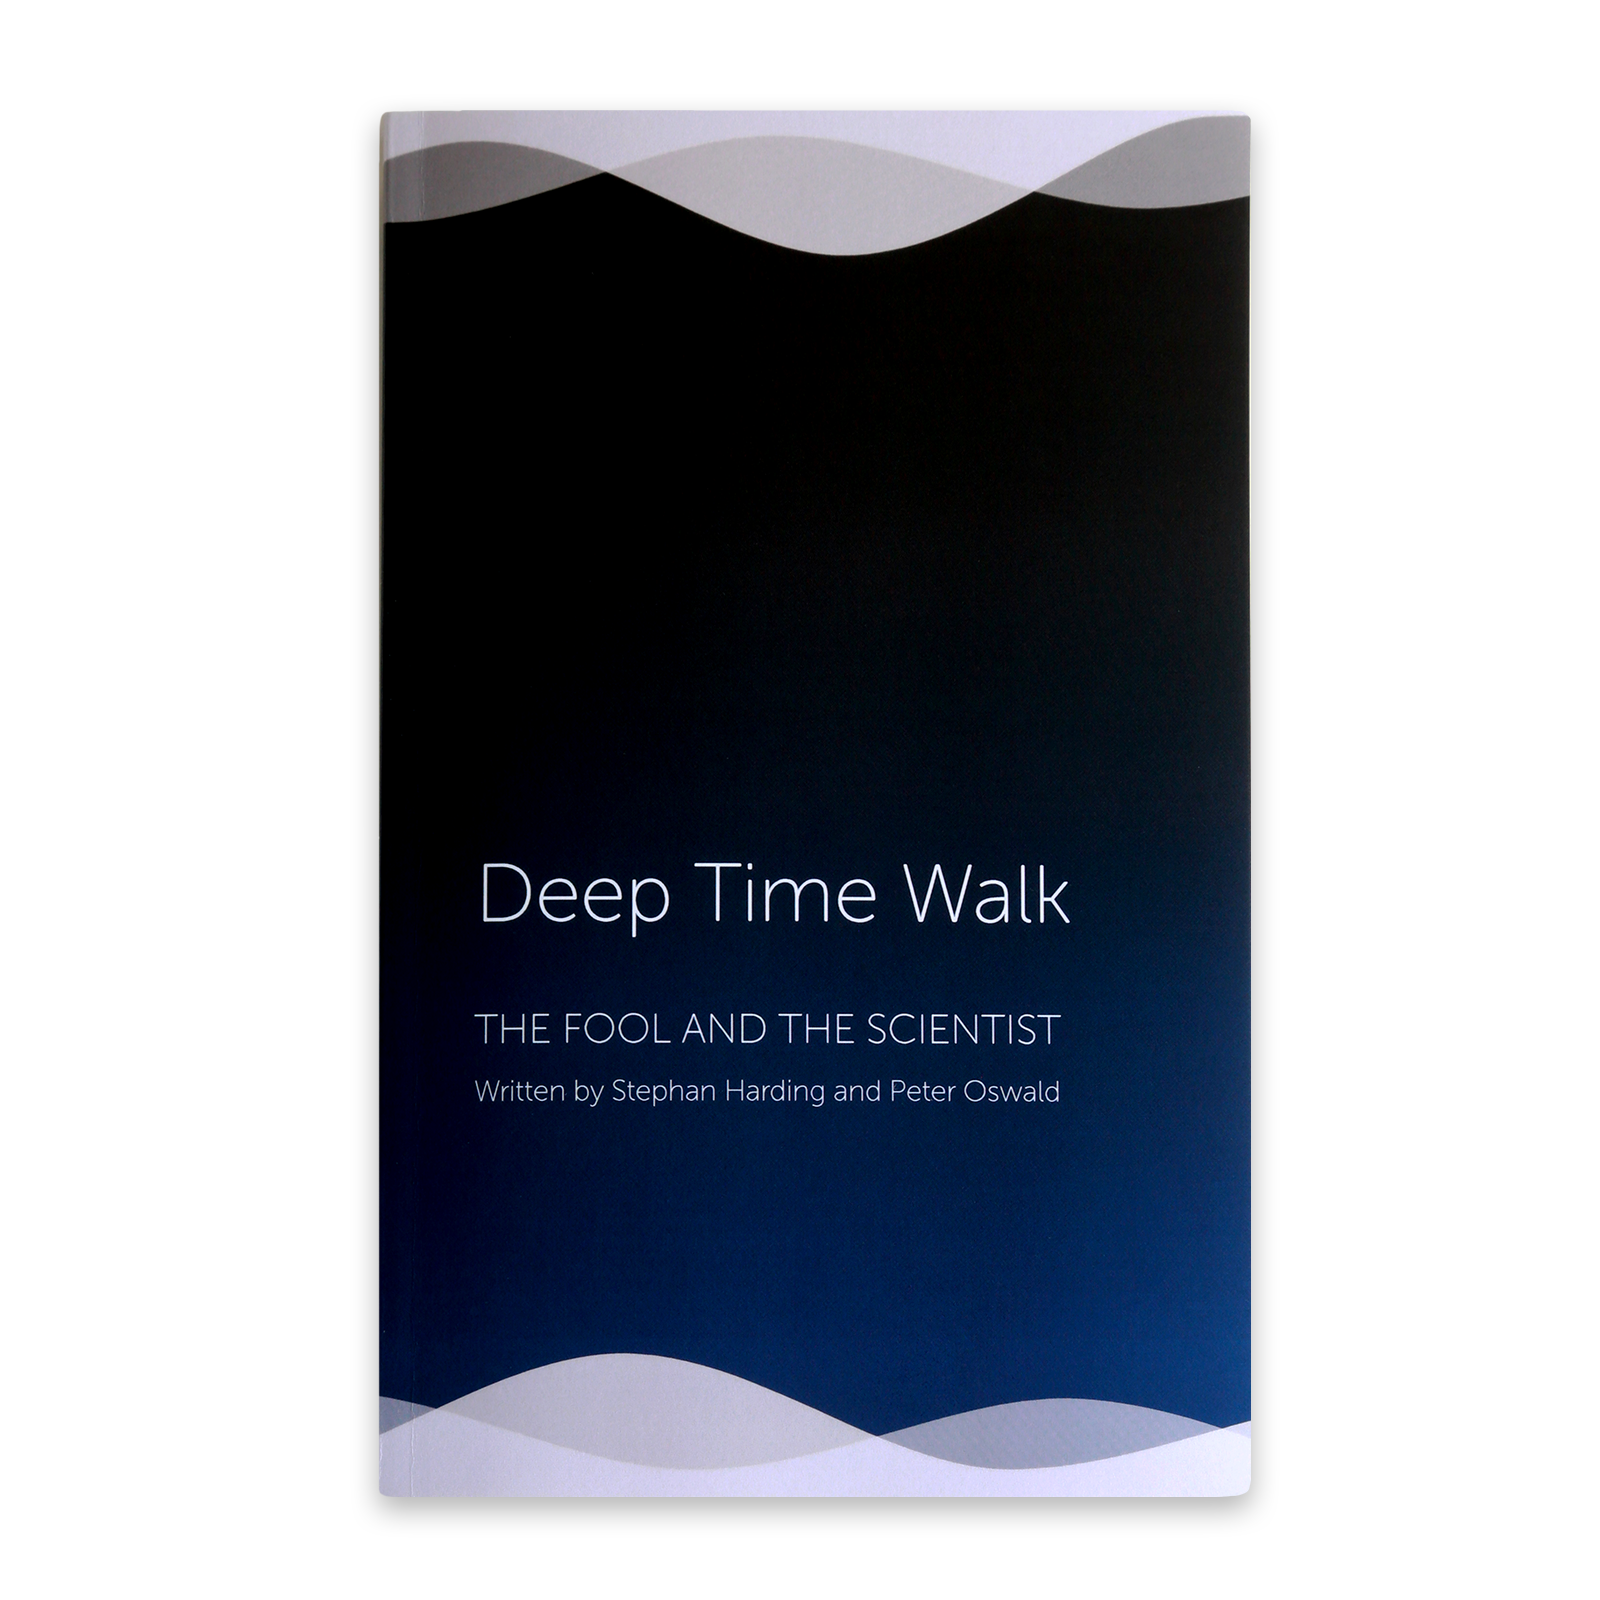 Deep Time Walk Script